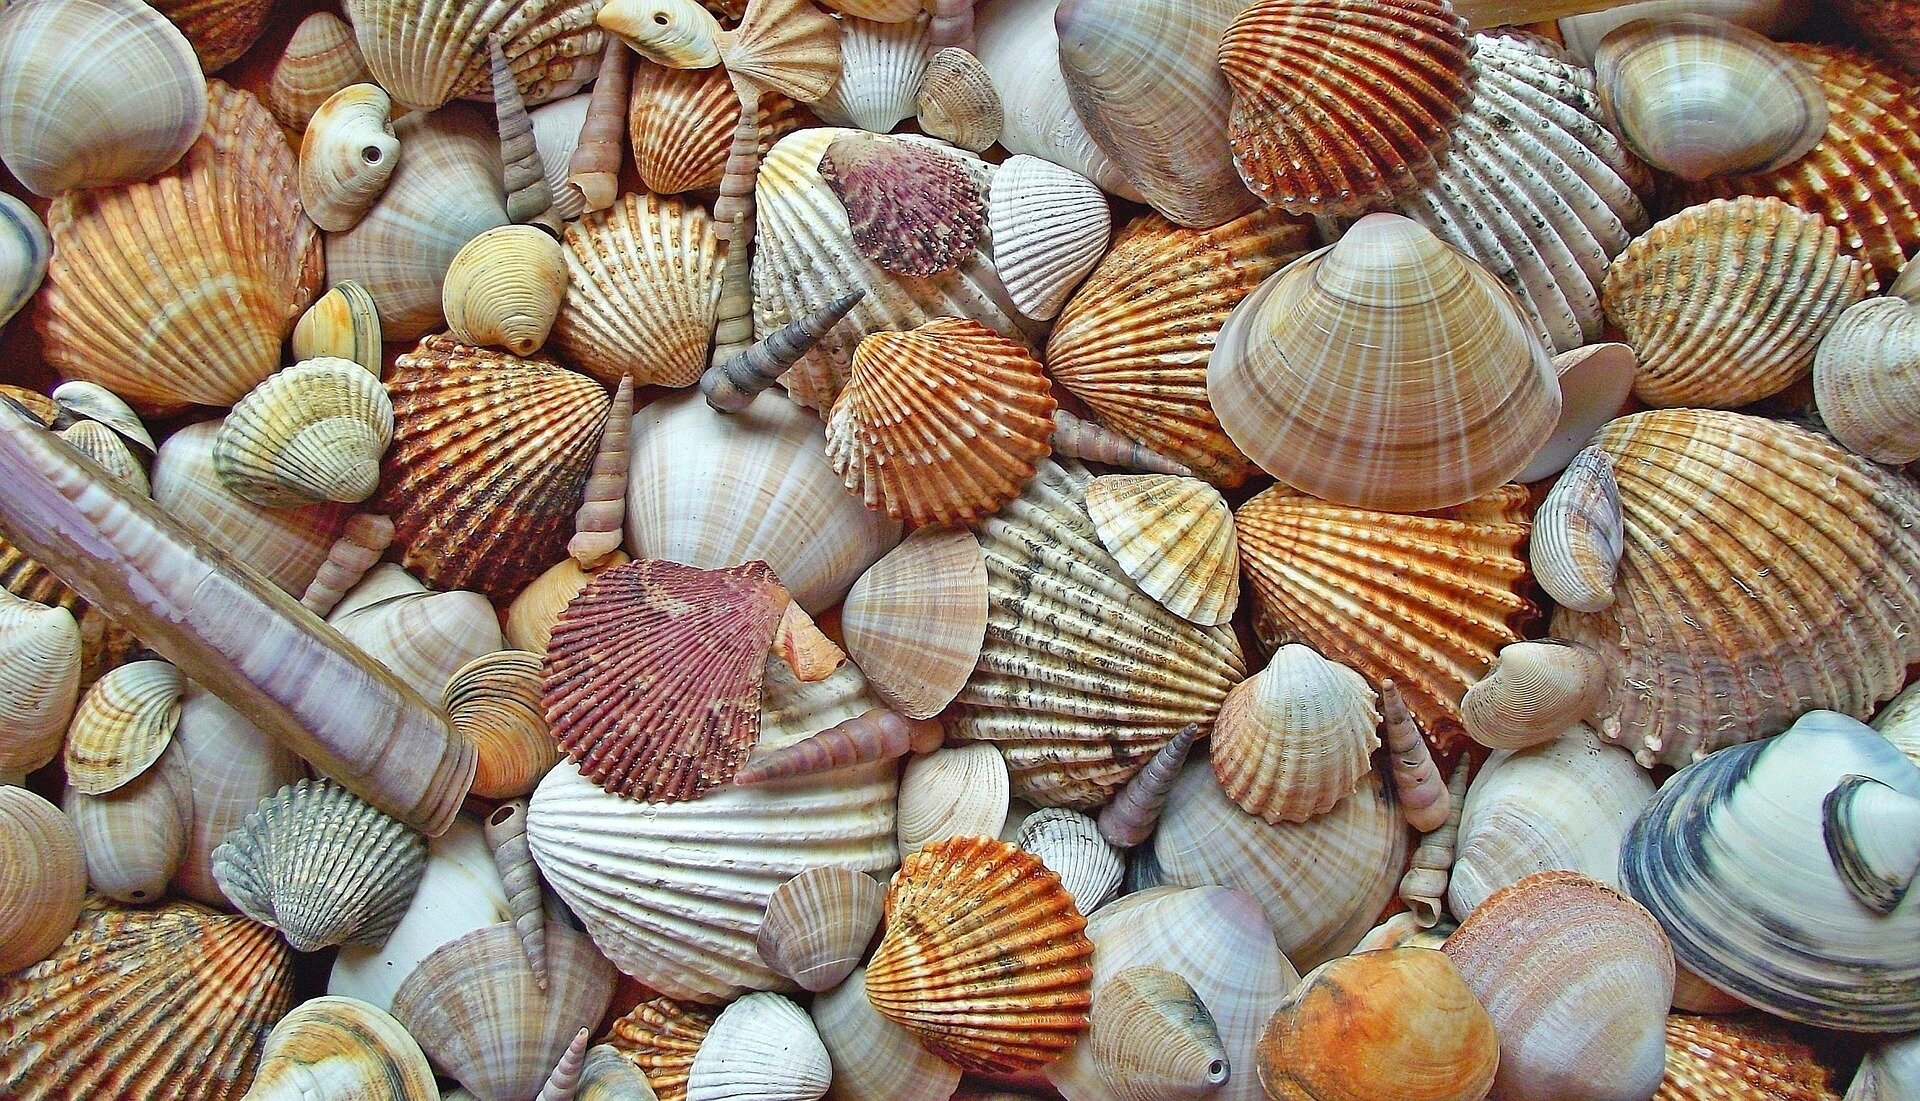 the friends who pluck each other's bushes with shells are friends forever. -